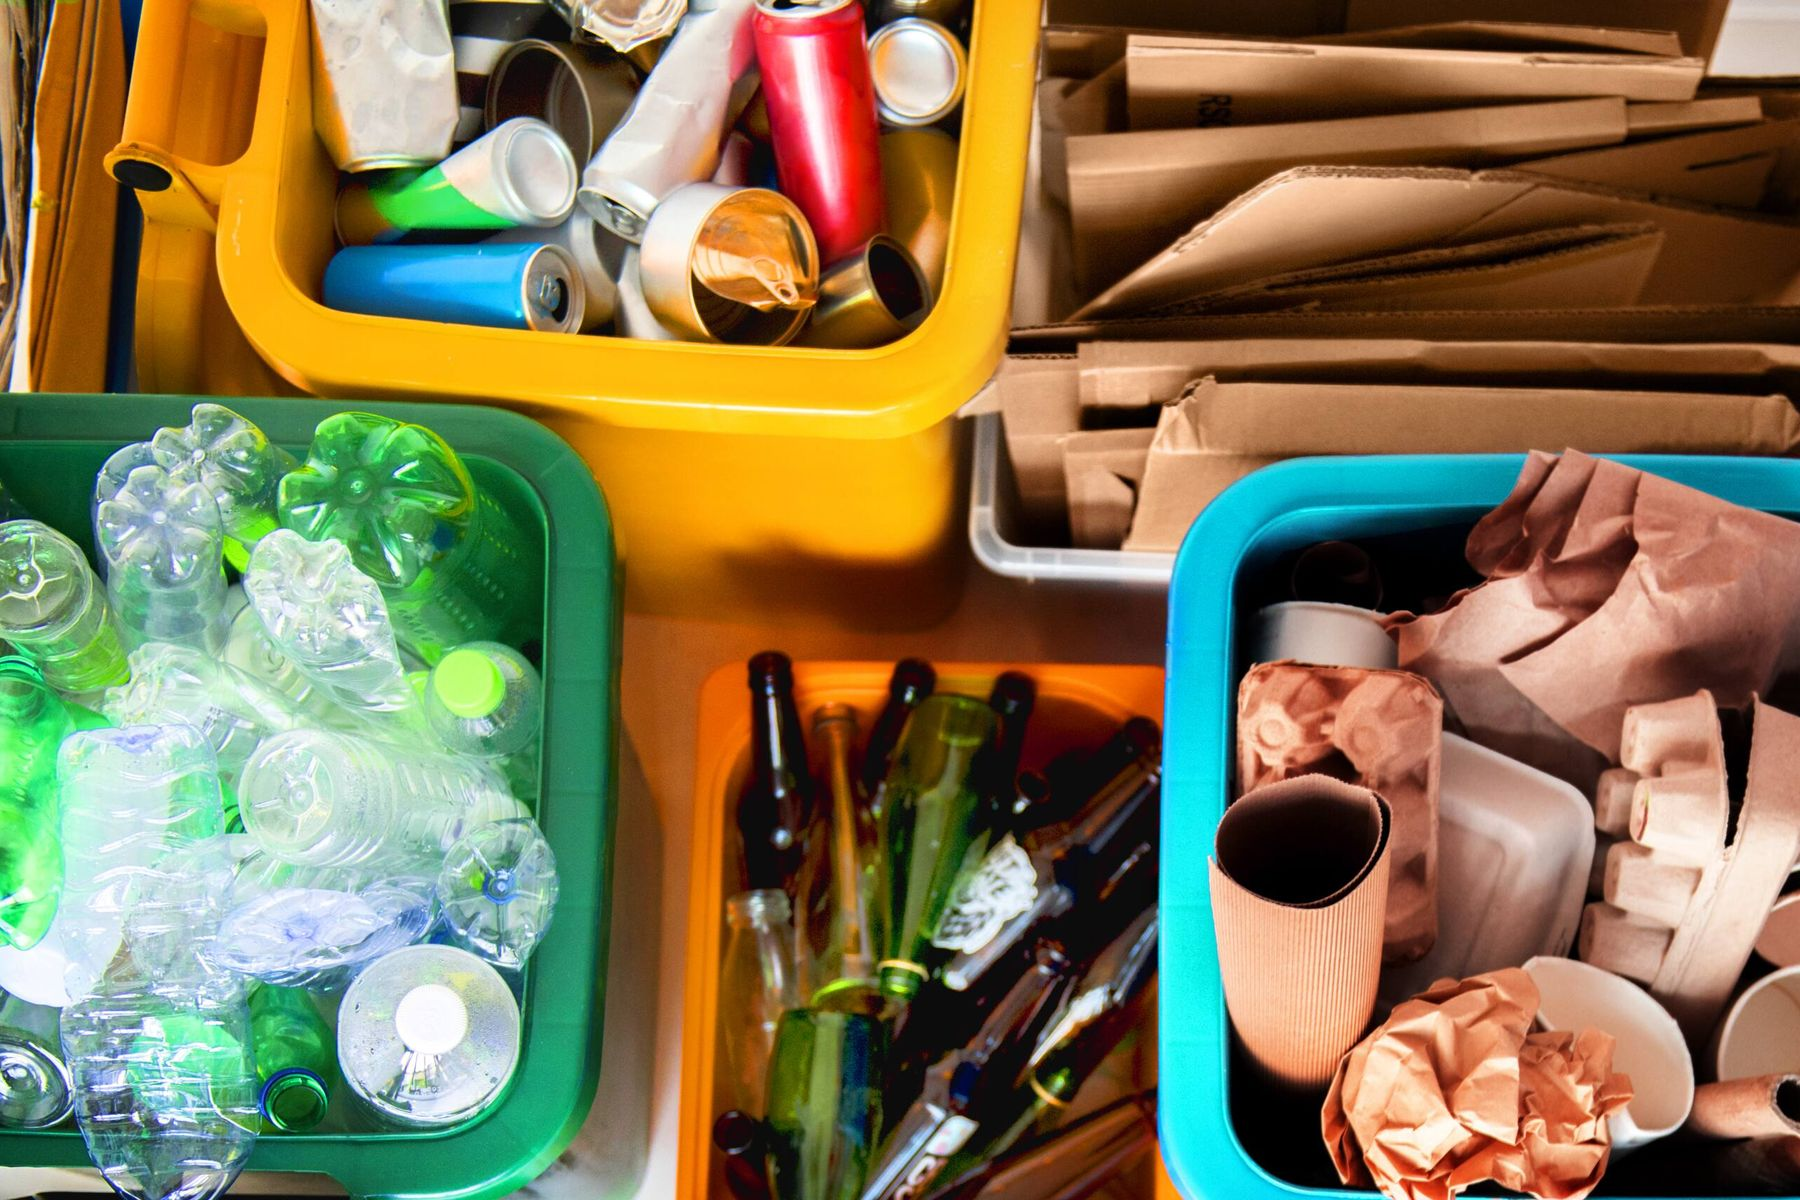 reducing single use of plastic by sorting recyclables